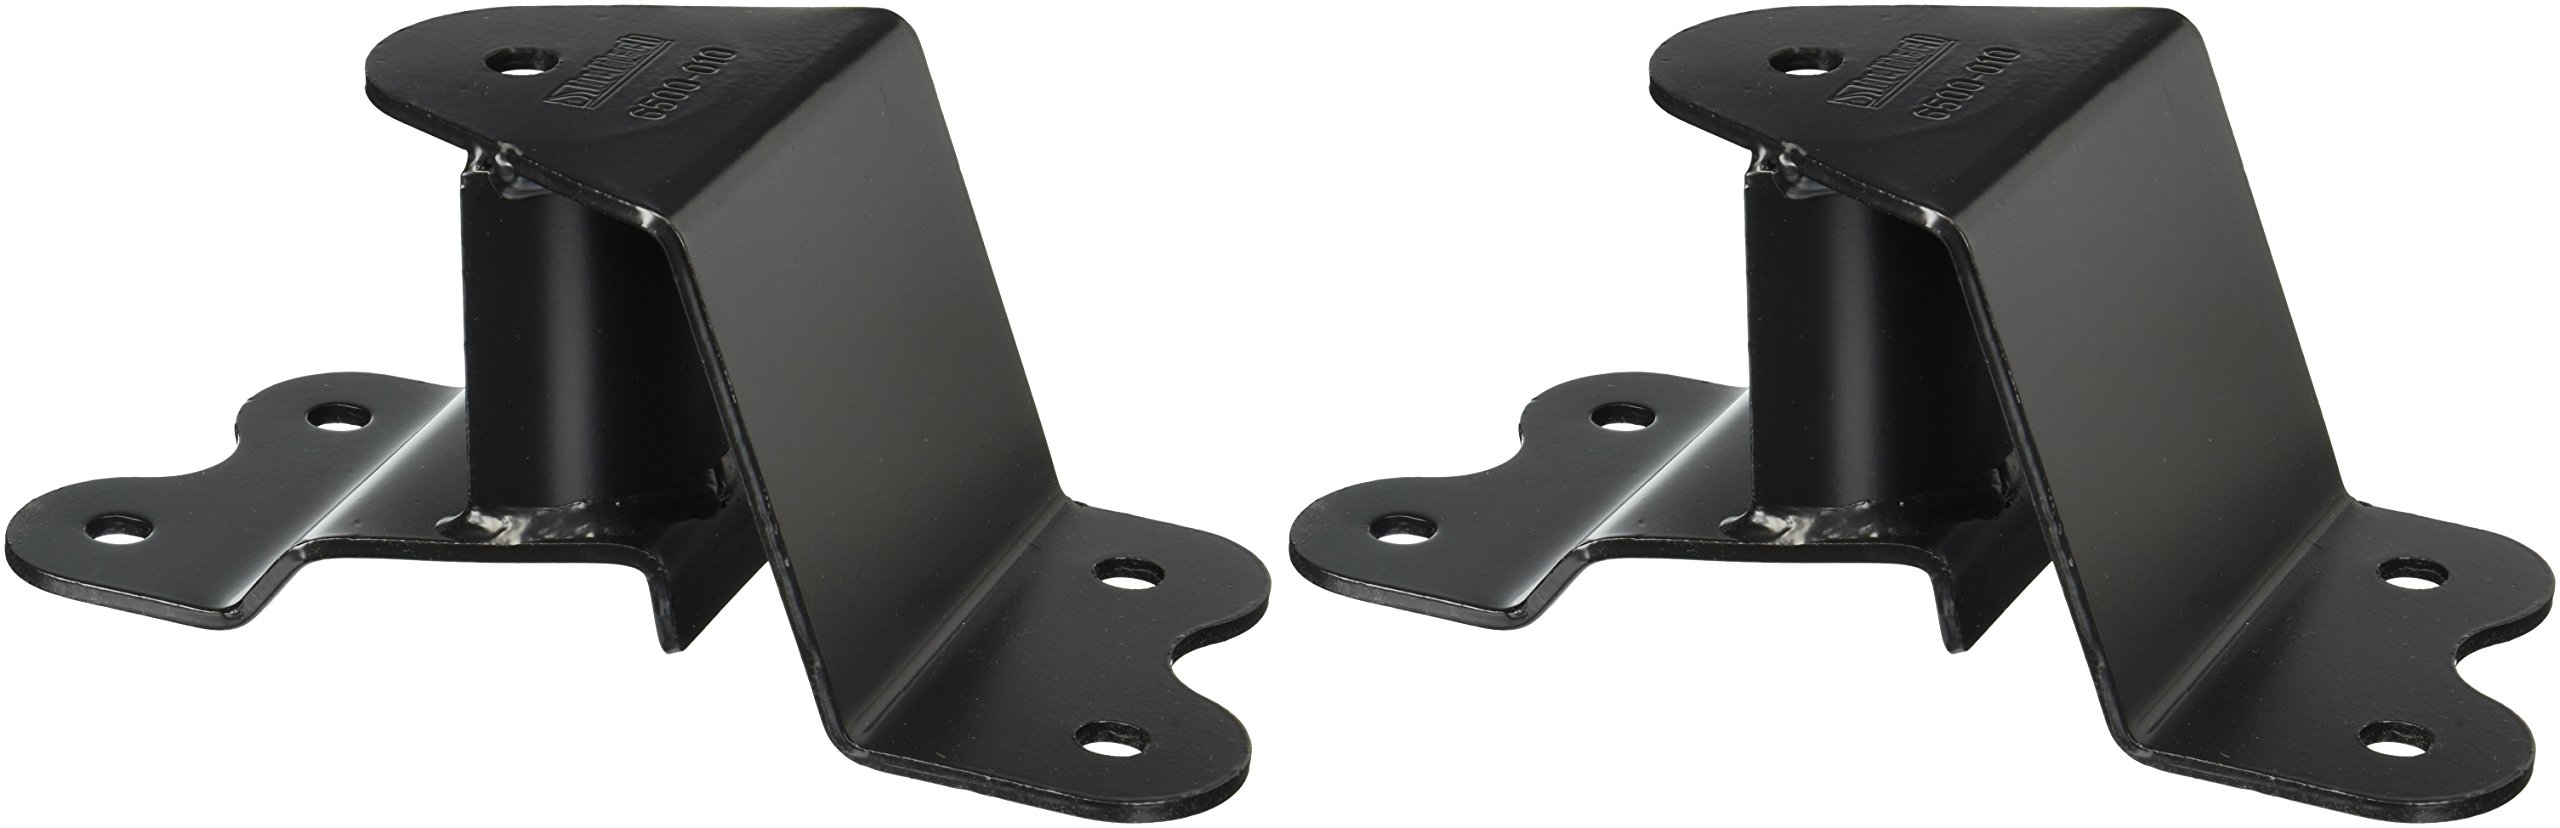 Belltech 6502 Hanger Kit